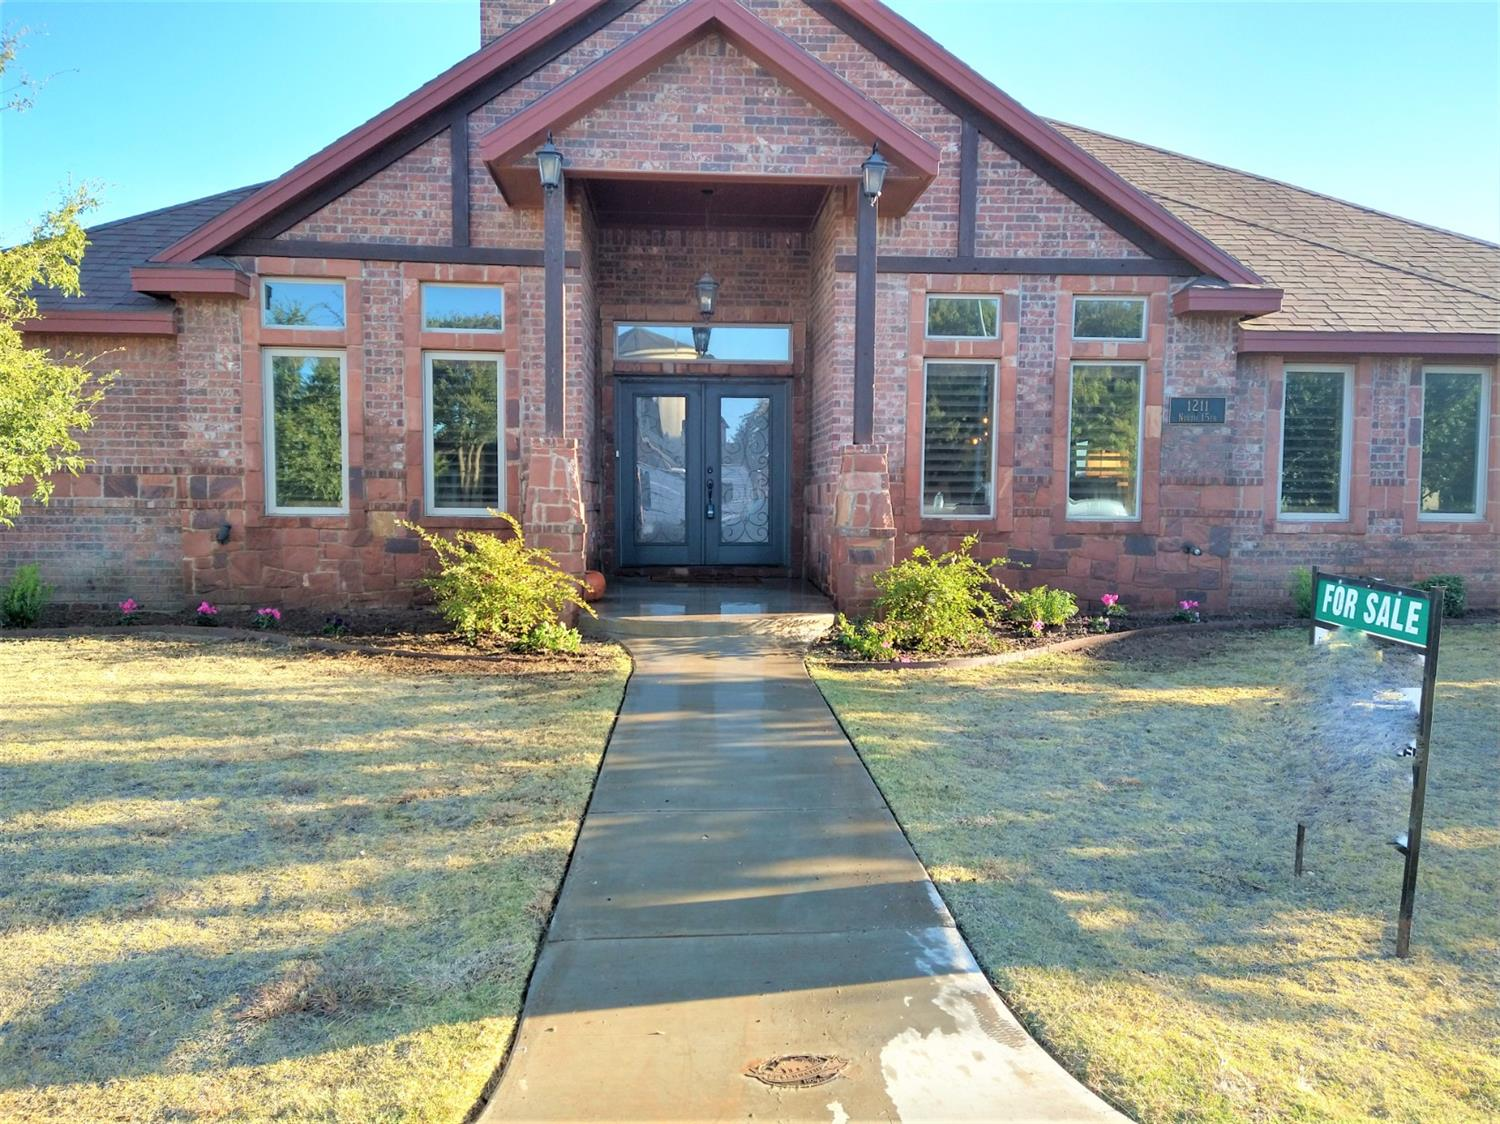 Gorgeous custom 4 bed, 2/5 bath with an office!  Frenship ISD! Stunning professional kitchen with custom cabinets; formal dining room with hardwood floors; cathedral ceiling with wood beams and floor-to-ceiling stone fireplace in family room; office/study; relaxing master suite with air flow tub, two vanities, and spacious walk-in closet; two of the bedrooms share a Jack N Jill bathroom; bonus room; mud room with built-in desk; and more! Backyard features a built-in outdoor grill. Preston Manor offers 7,000 SF Rec Center; 3 Pools (Child's Pool, Wading Pool, Lap Pool); 9 Professional Tennis Courts; Fitness Facility with Classes; Gazebos for Private Events; Park with Walking Trail & Pond.